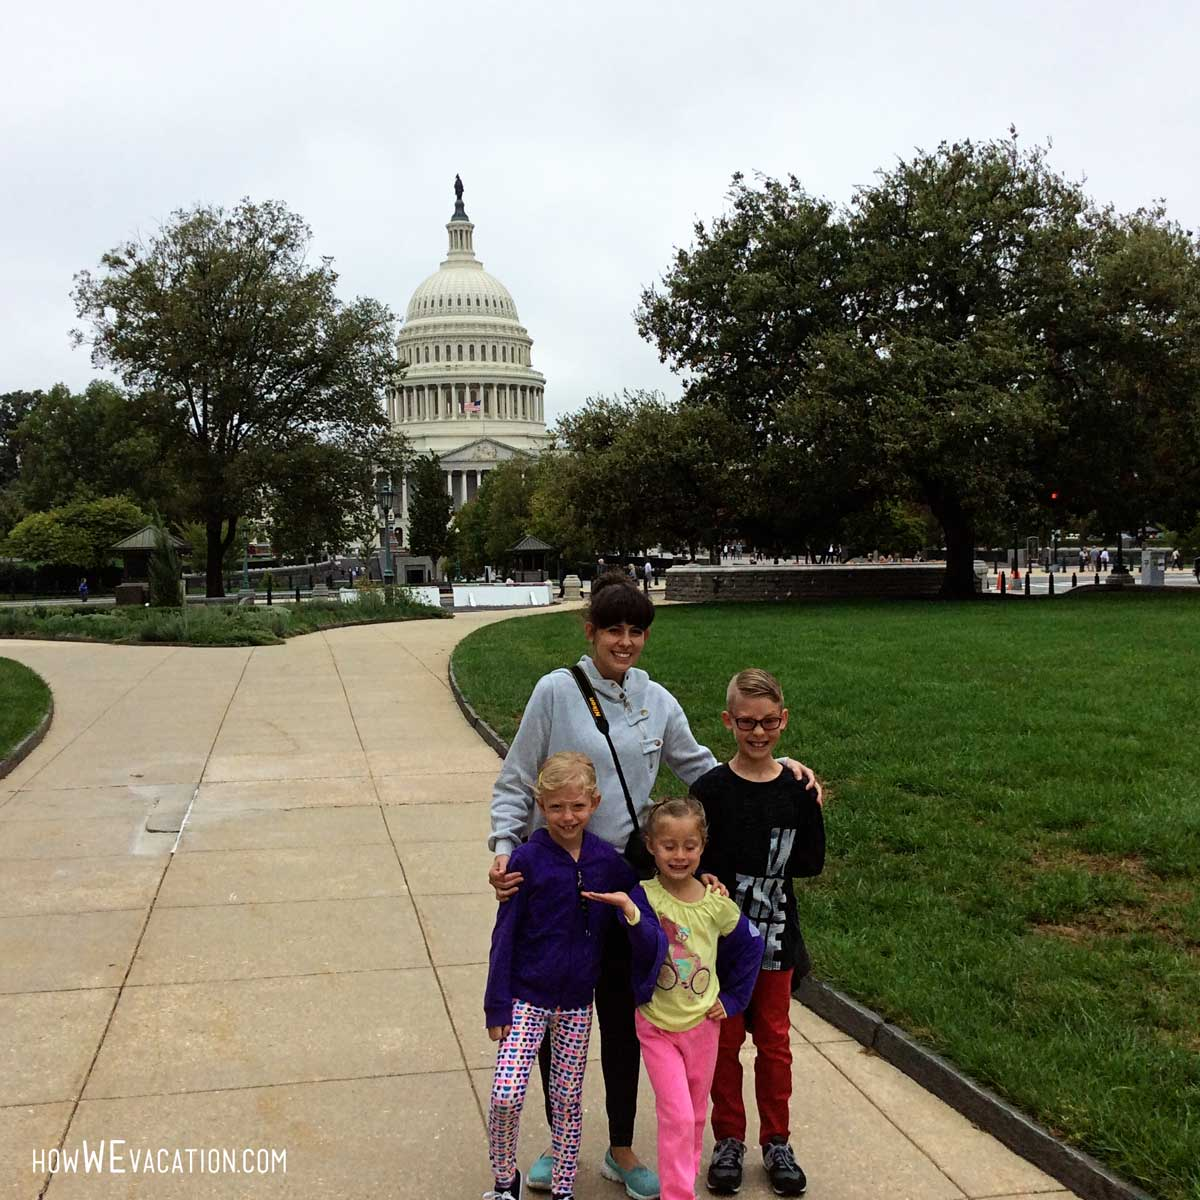 Kids at the capitol, Washington D.C.